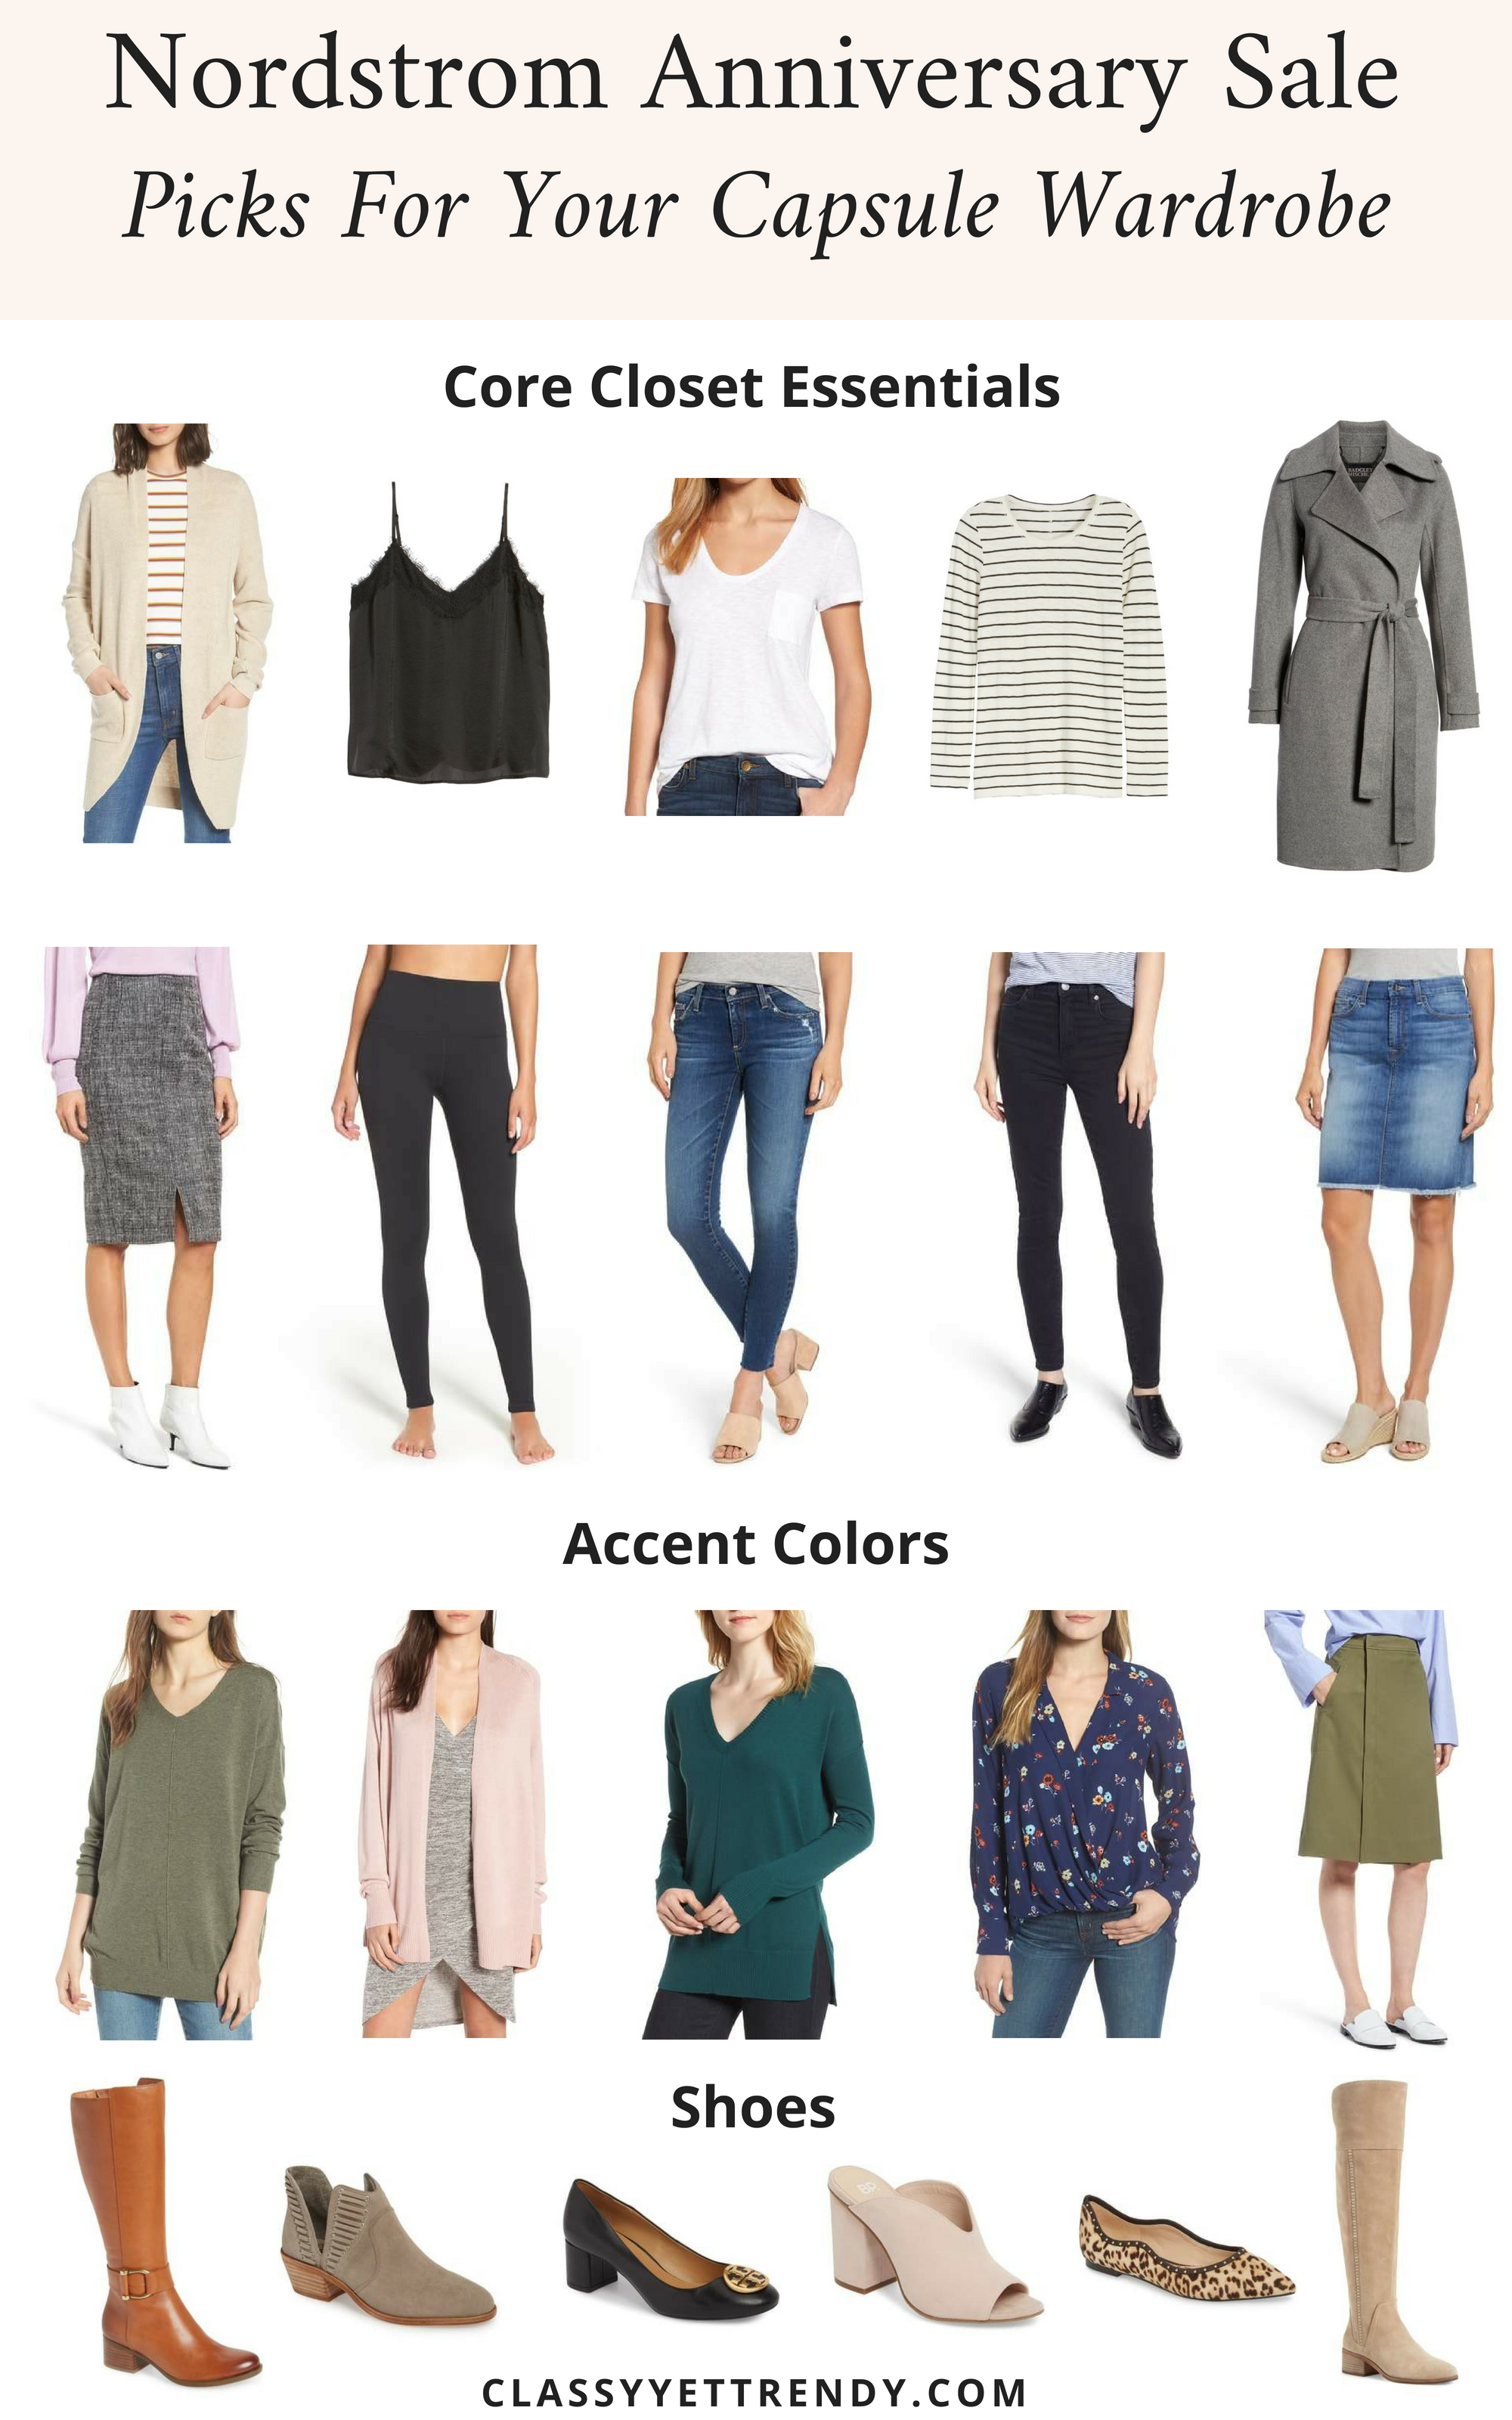 Nordstrom Anniversary Sale Picks For Your Capsule Wardrobe